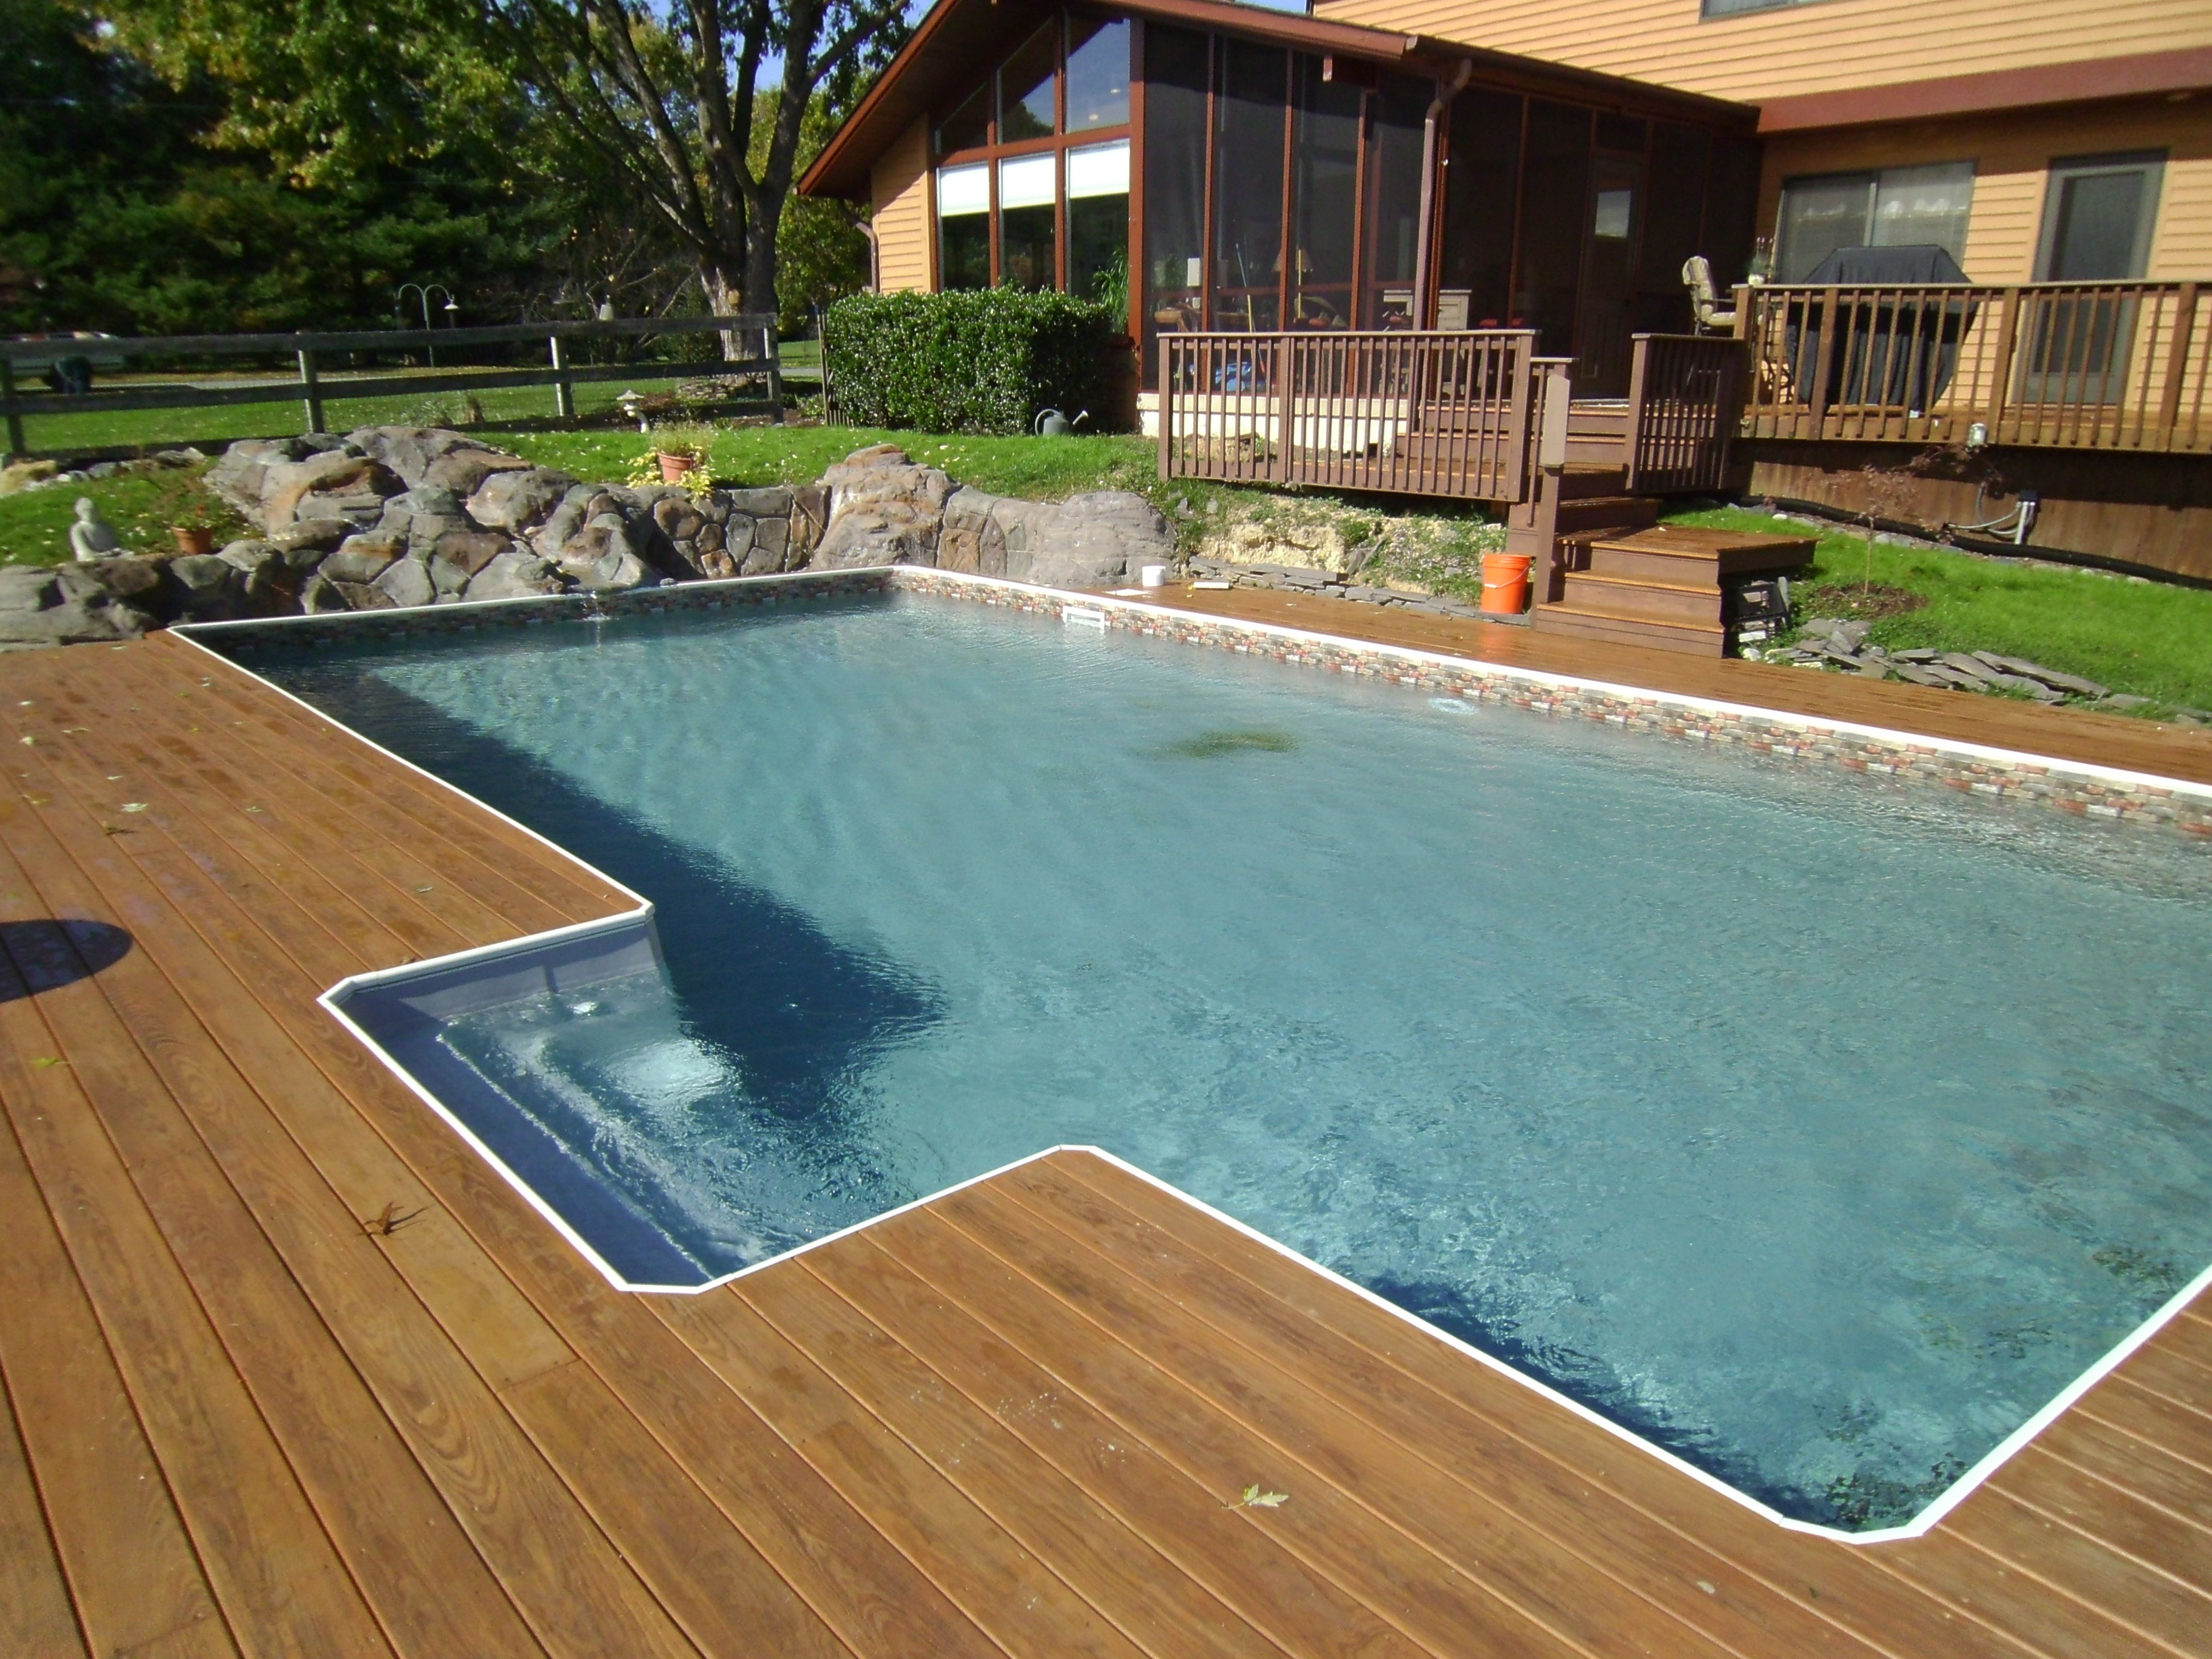 Built In Pool Ideas small round inground pool Rectangle Sharkline Extruder 10000 Inground Pool With Built In Step